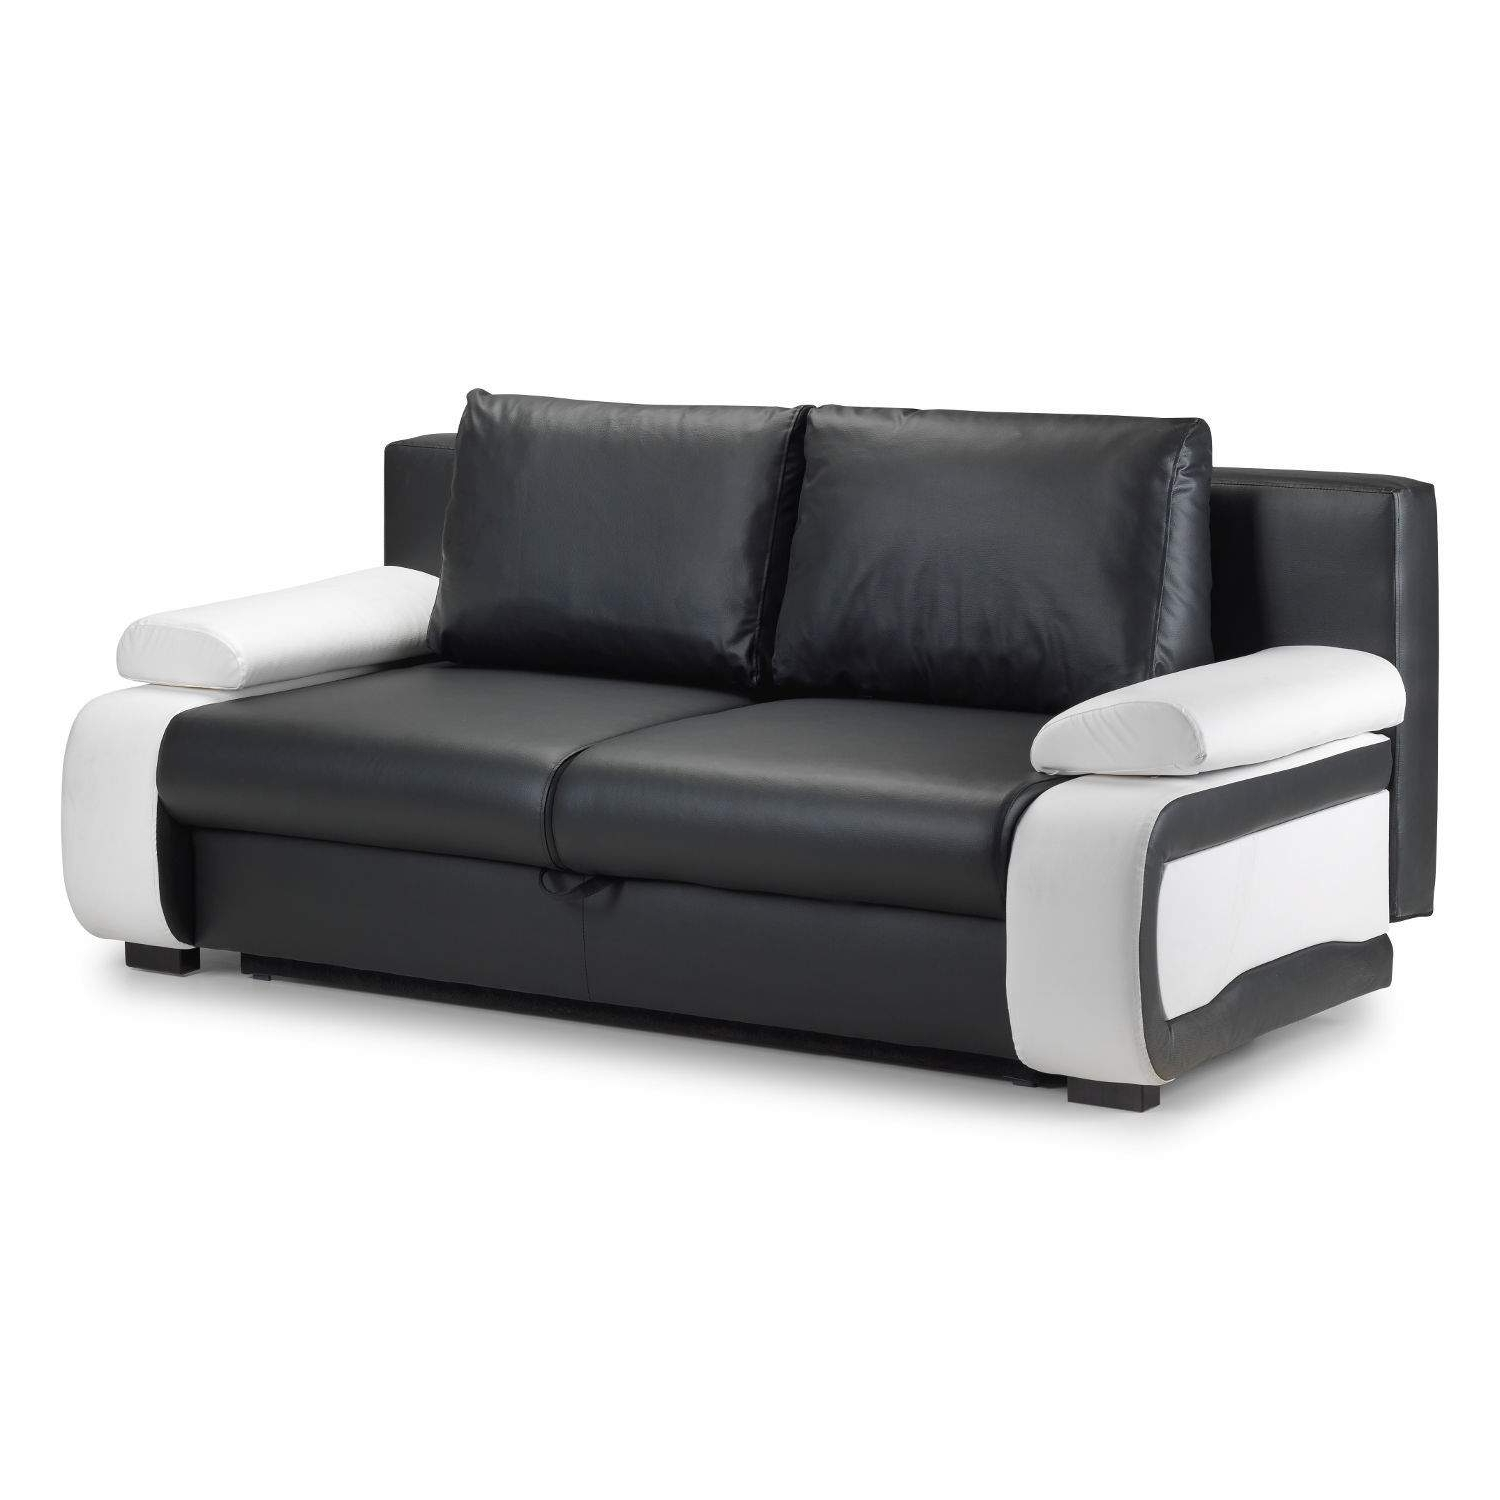 Victoria 2 Seater Sofa Bed – Next Day Delivery Victoria 2 Seater within Popular Black 2 Seater Sofas